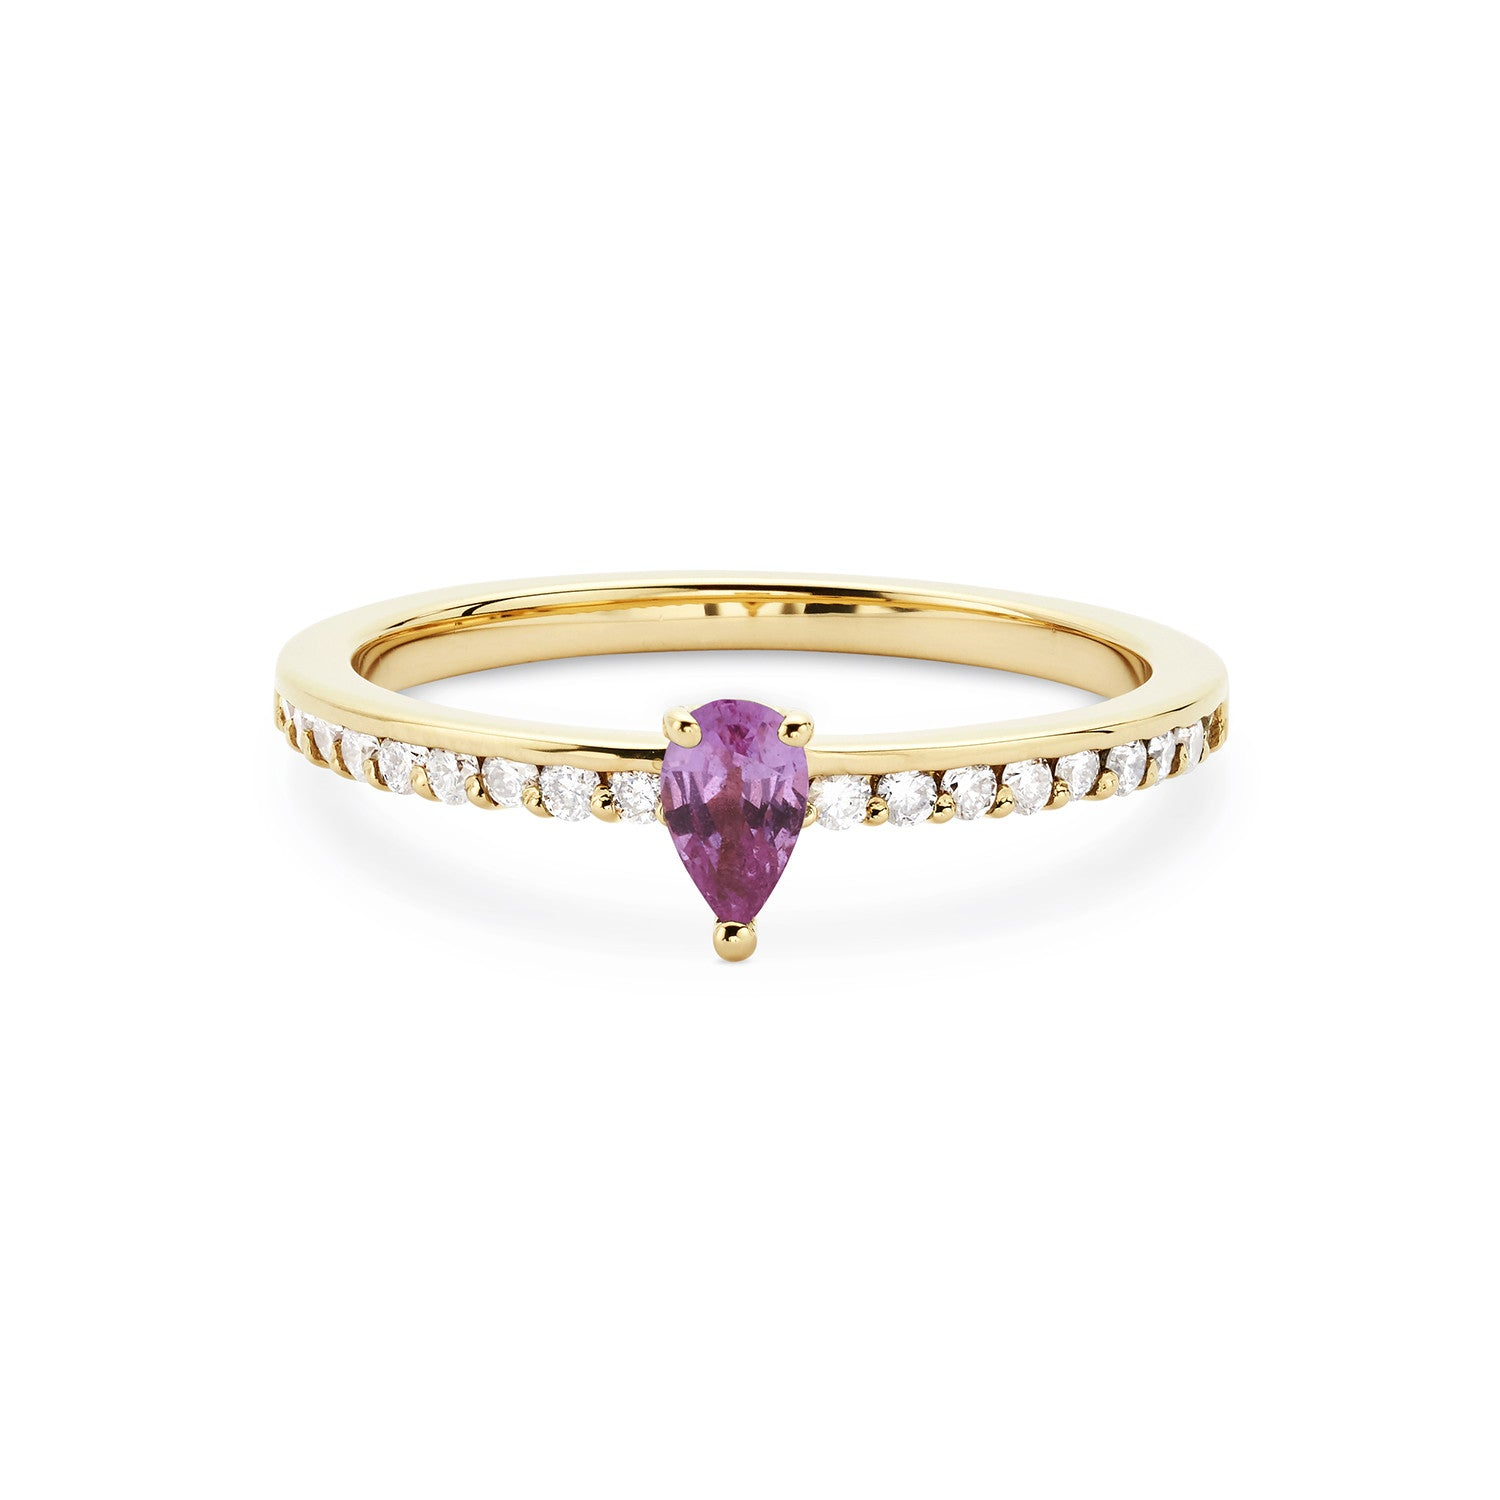 ben bridge ring rings jewelry pink sapphire diamond jeweler